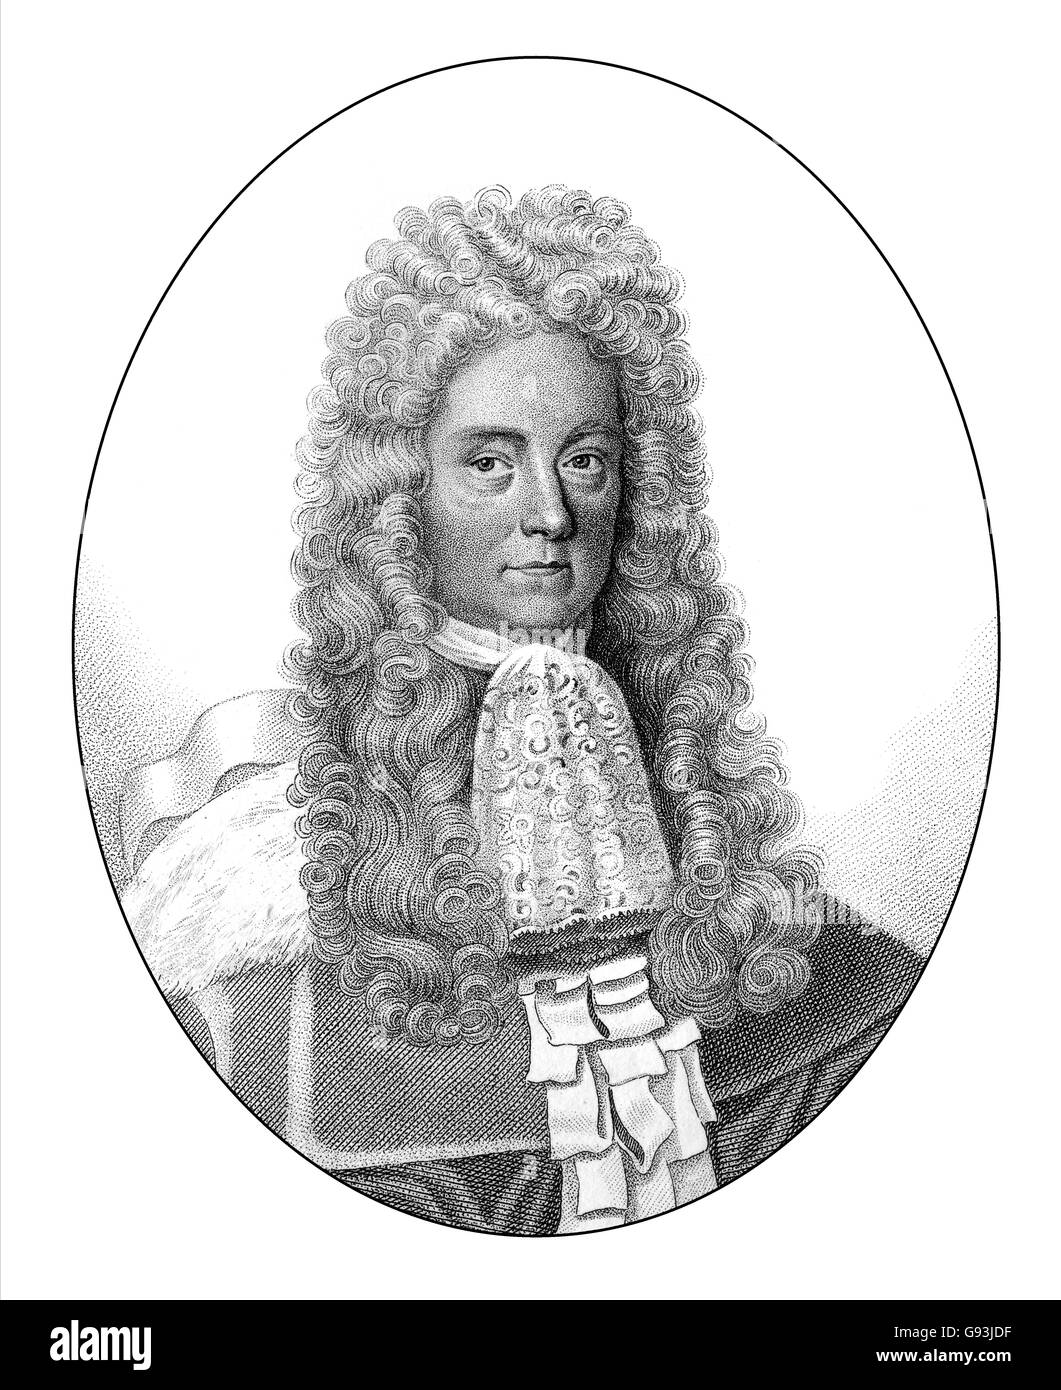 James Dalrymple, 1st Viscount of Stair, 1619-1695, a Scottish lawyer and statesman - Stock Image